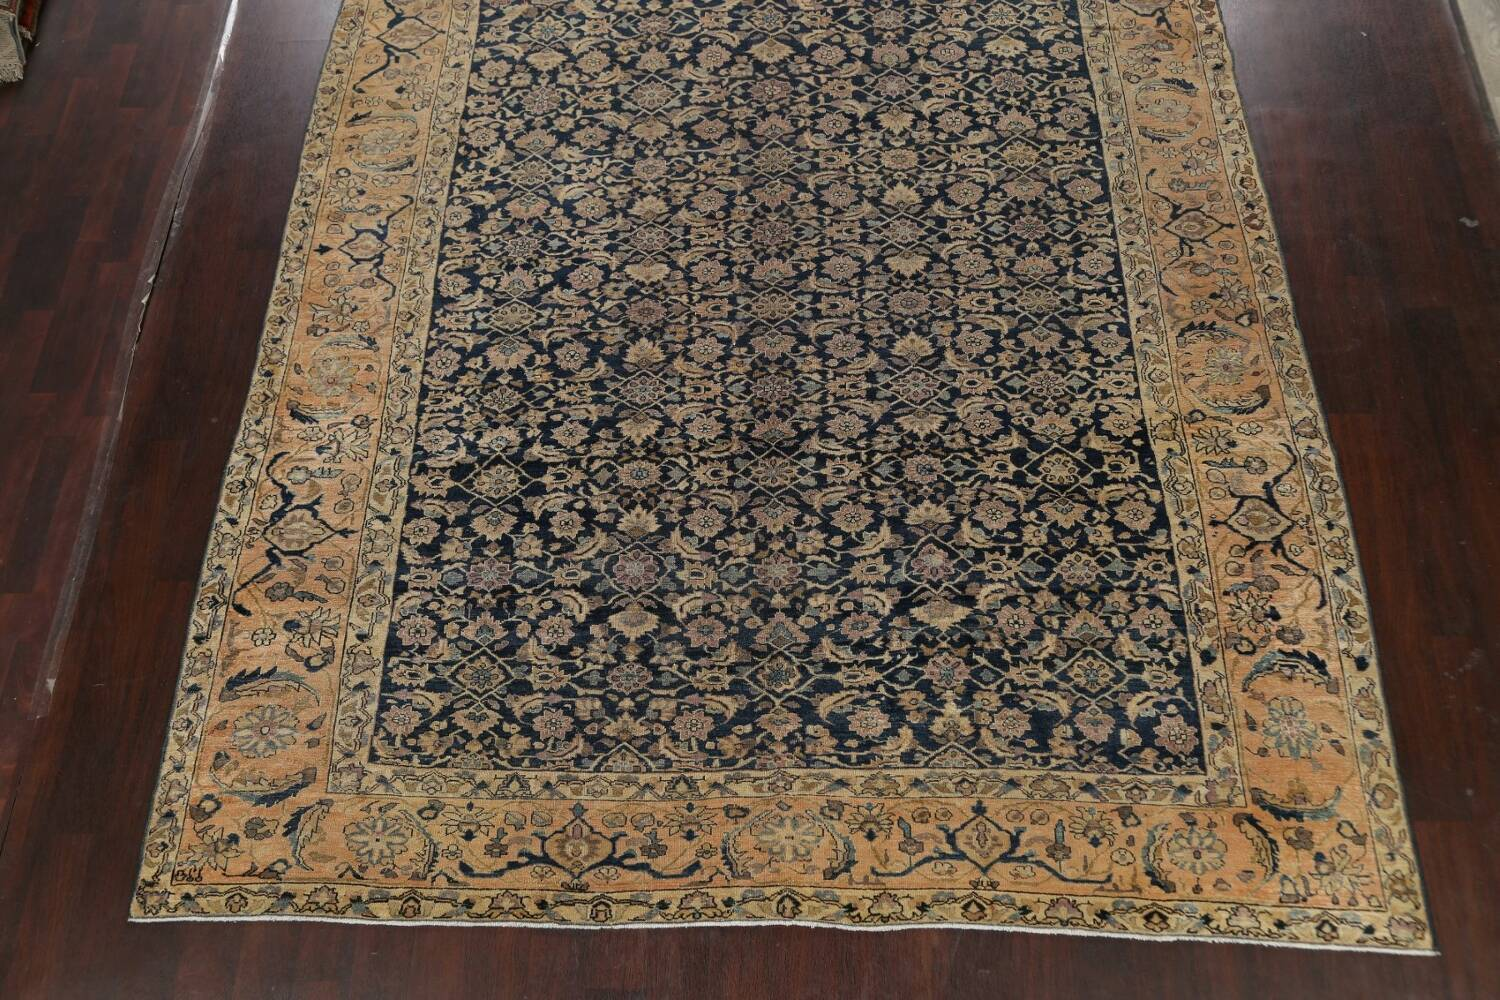 Pre-1900 Antique Vegetable Dye Malayer Persian Area Rug 9x12 image 8